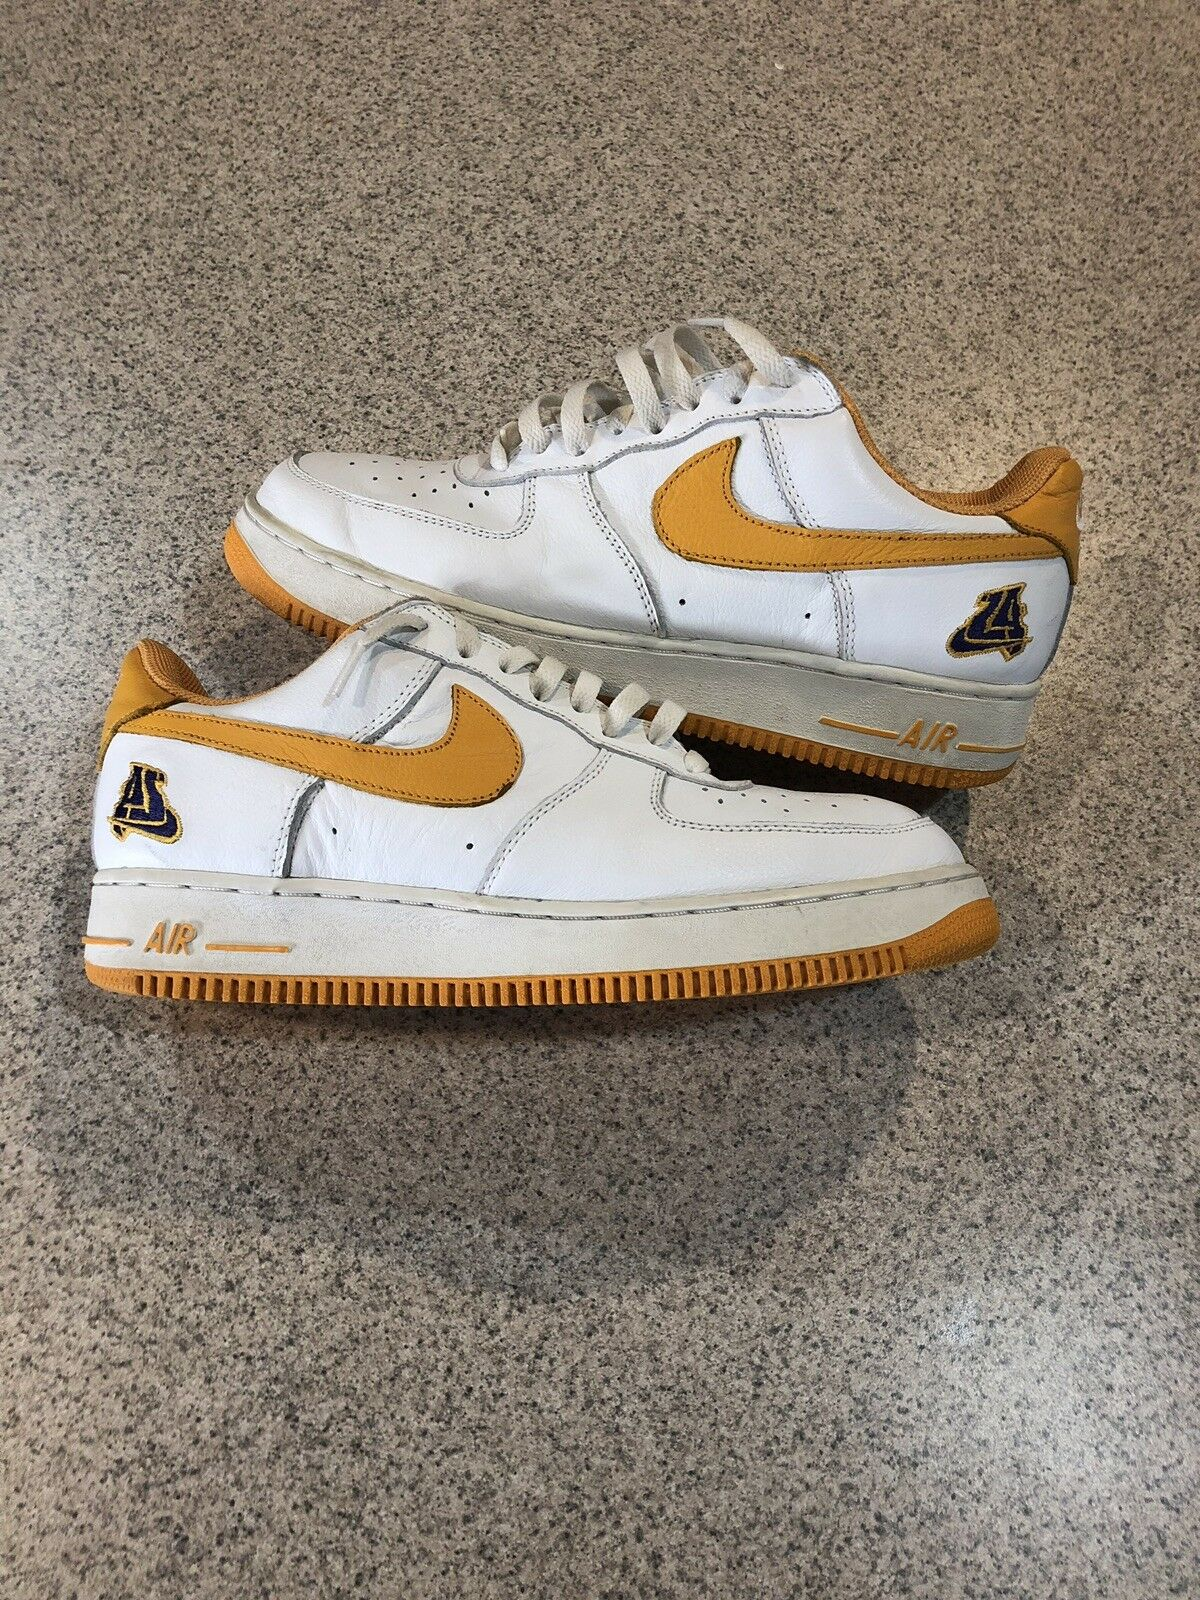 Nike Air Force 1 Los Angeles Lakers 2002 Edition (624040-173) Size 11 Pre-owned